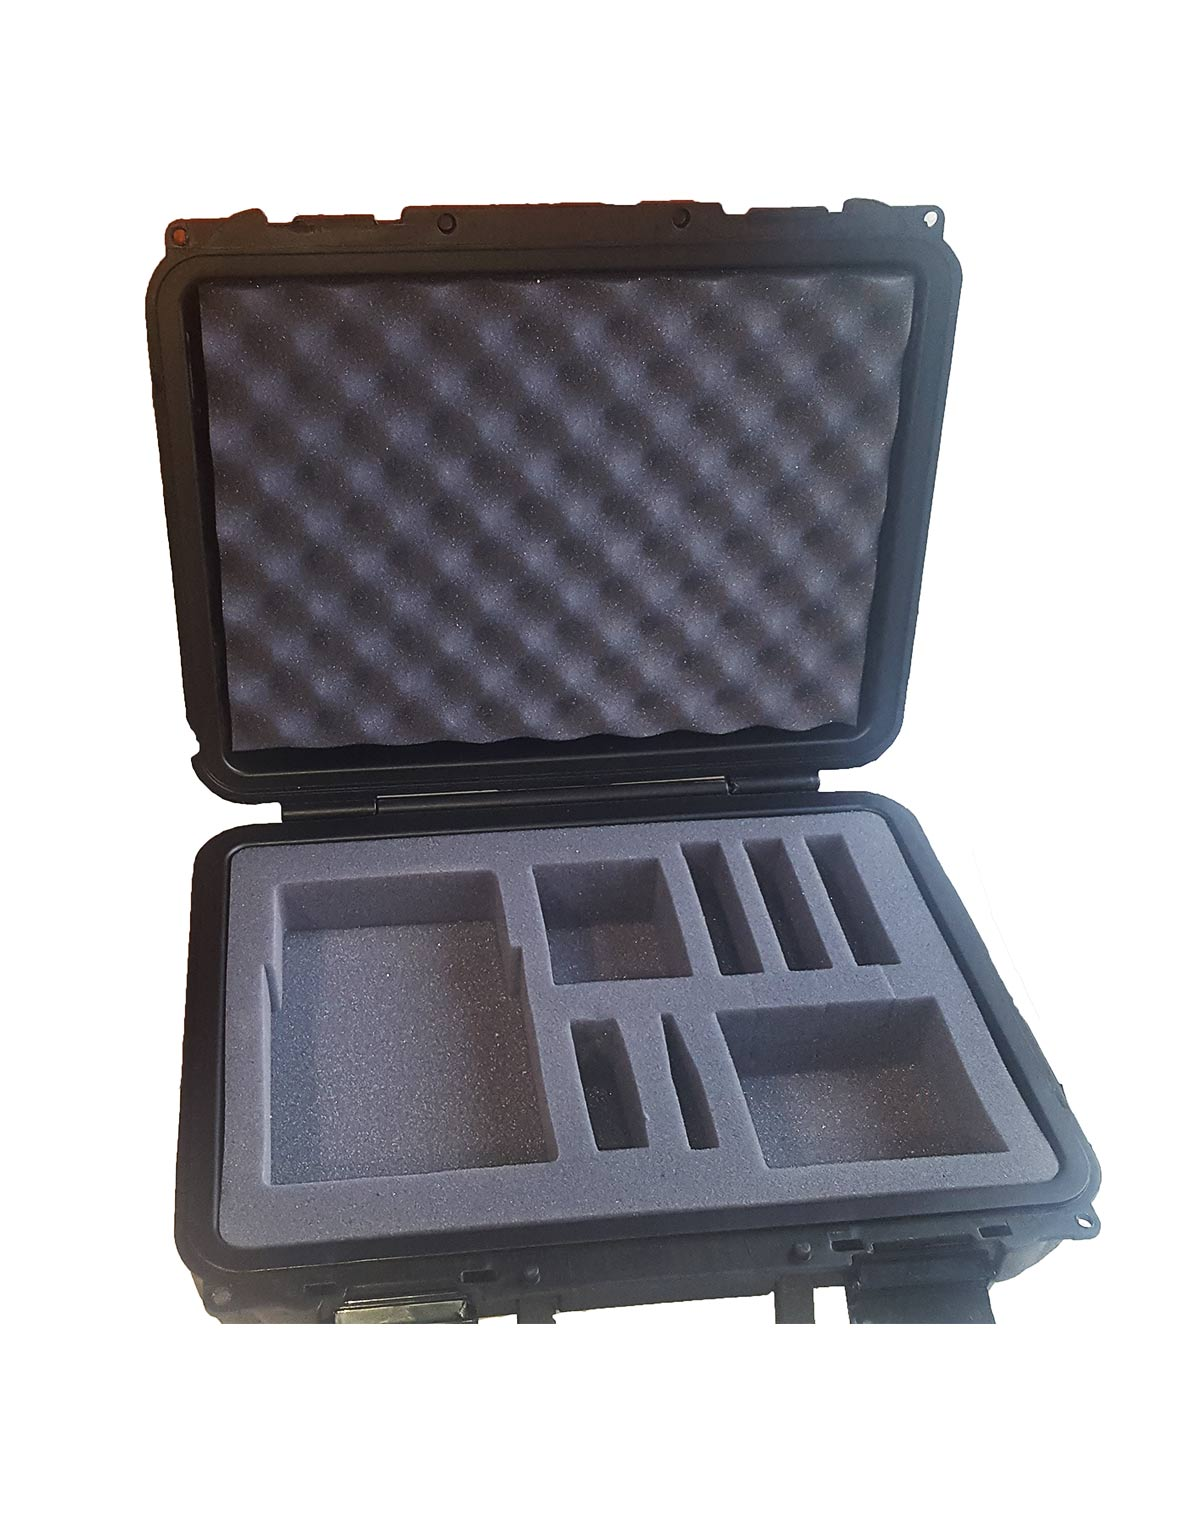 ATP 33 EV™ Hard Case (holds the instrument, leads, & charger)